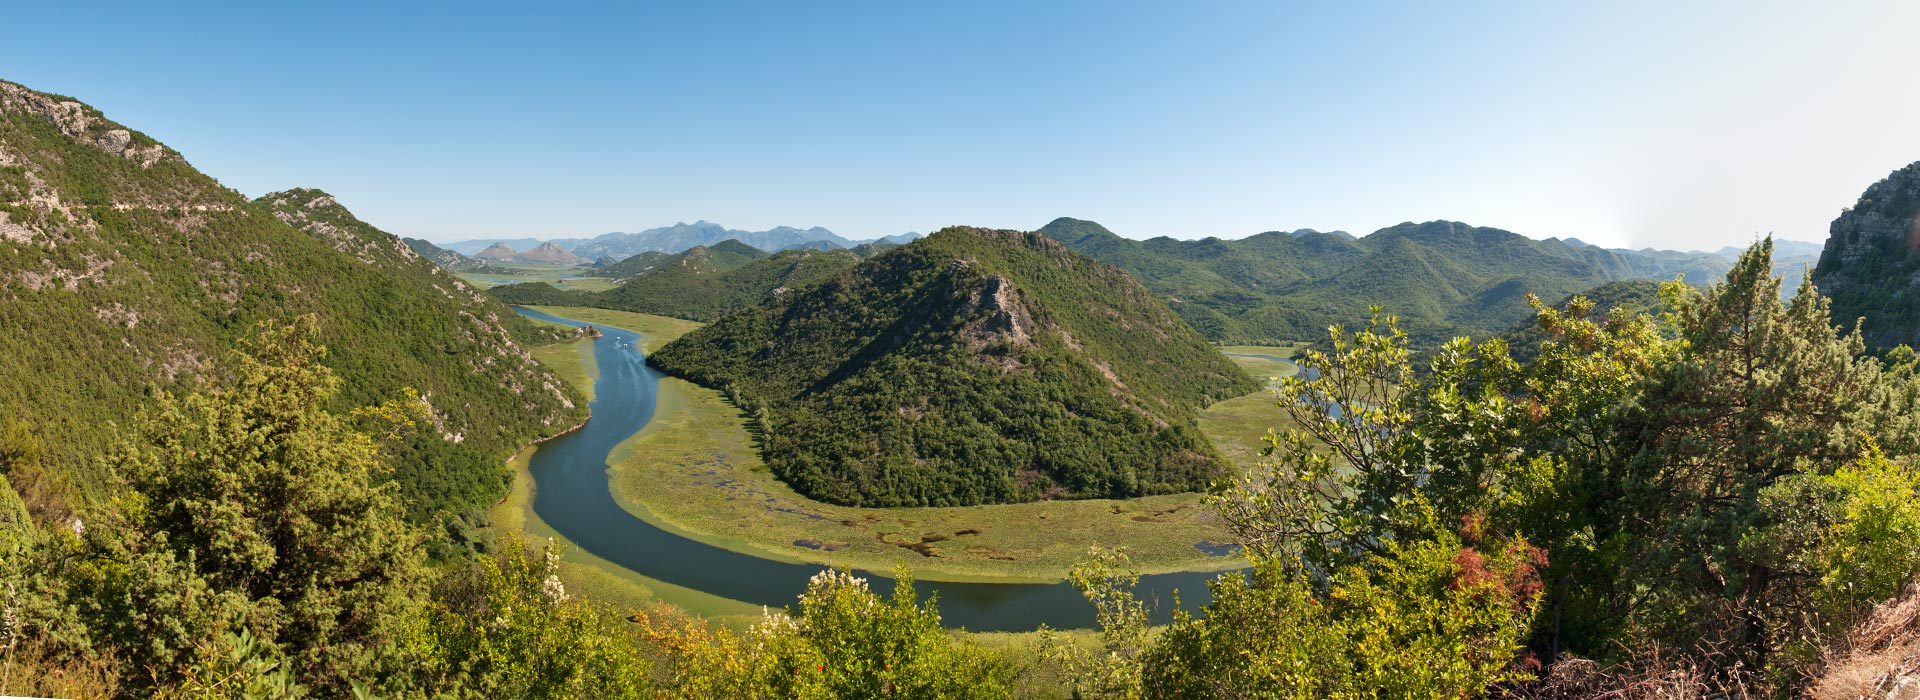 Excursion to Skadar Lake